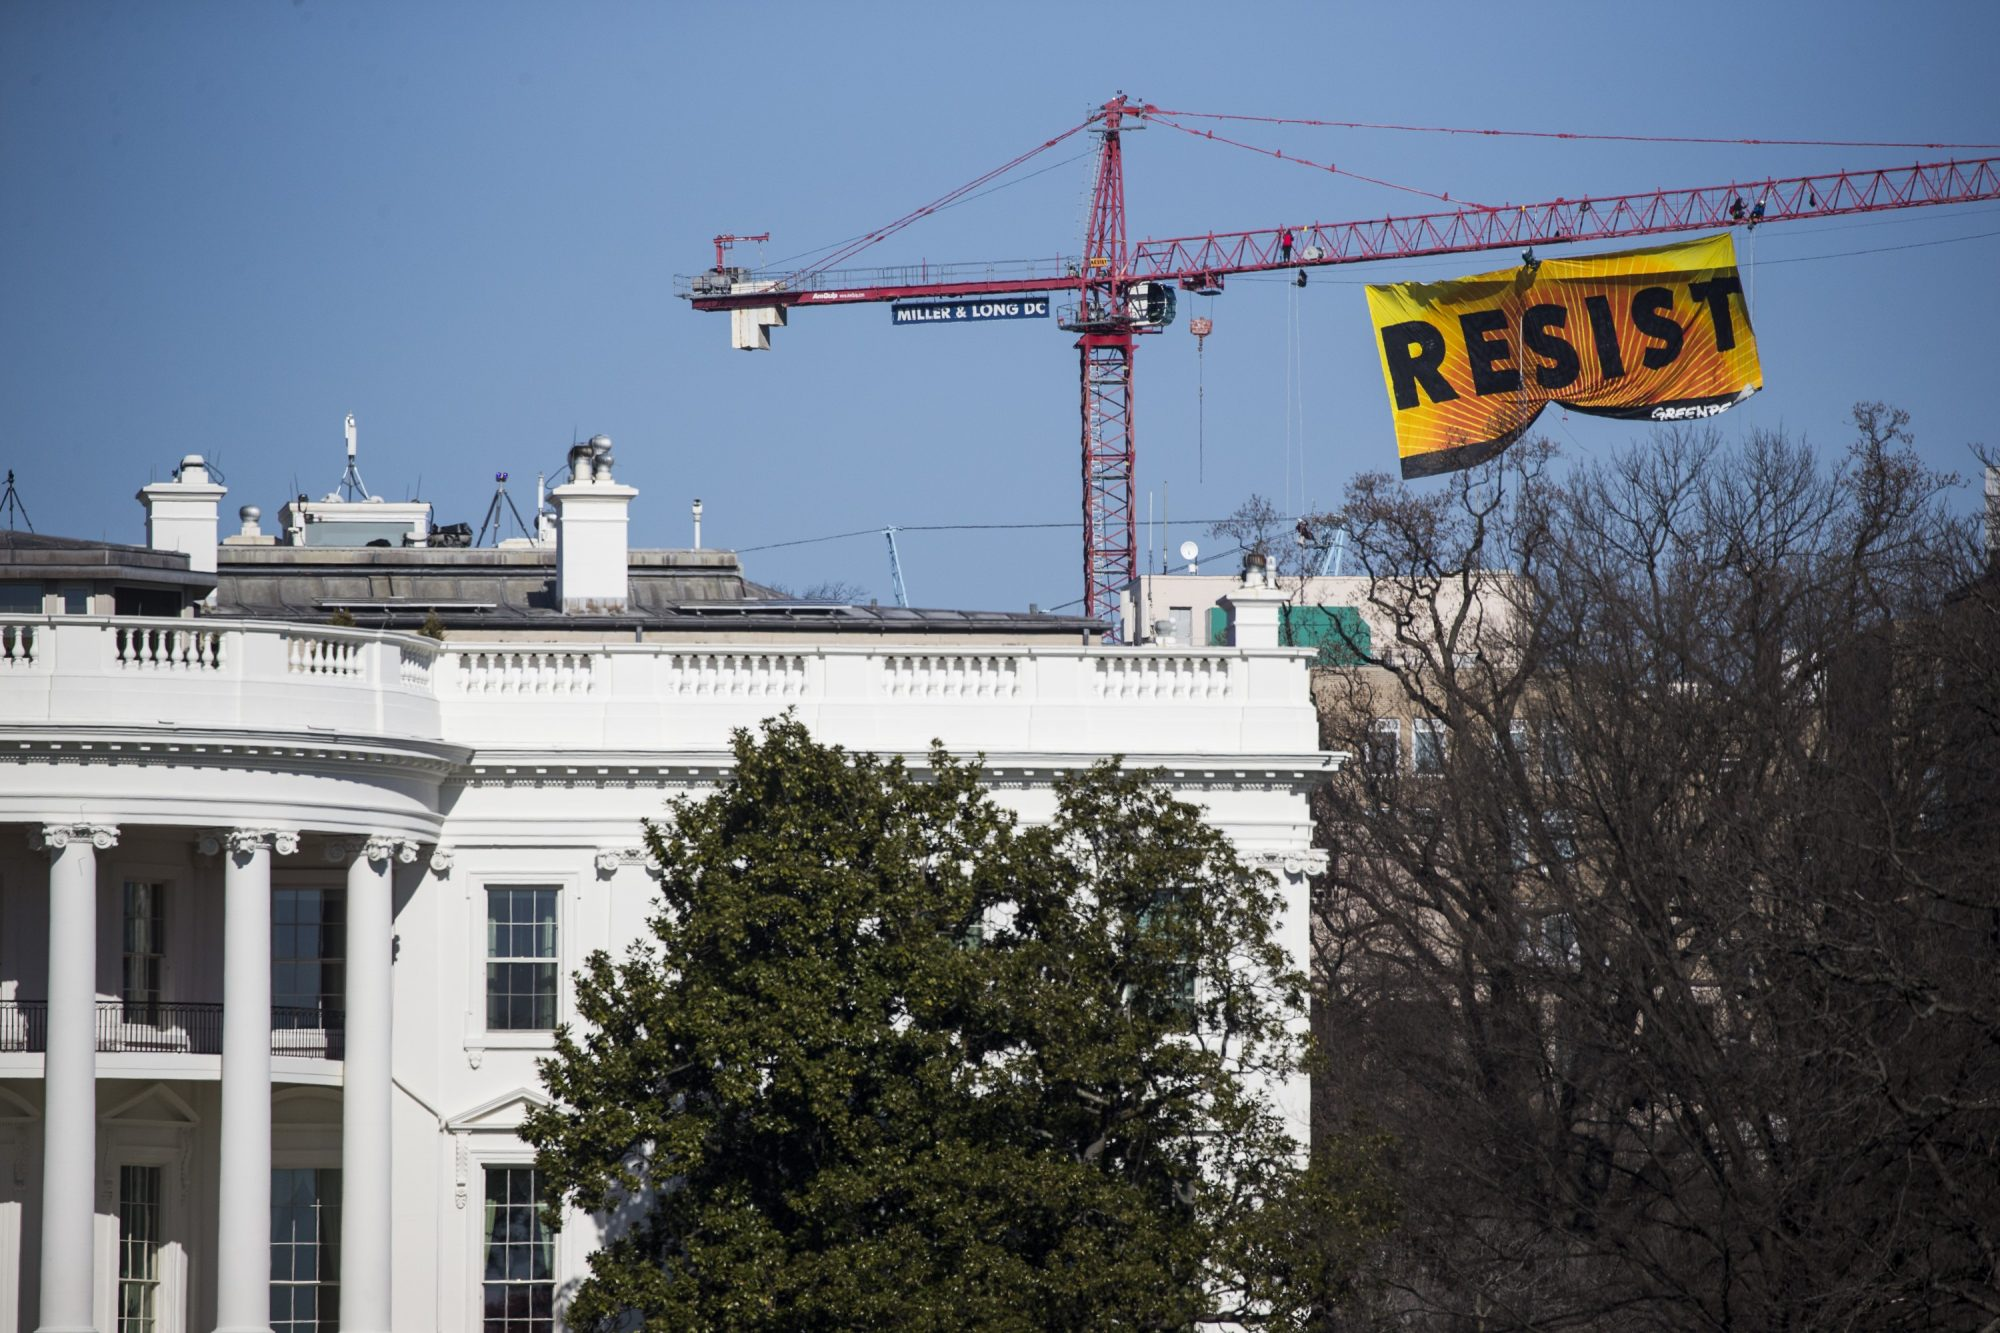 Greenpeace protestors climb construction crane in Washington